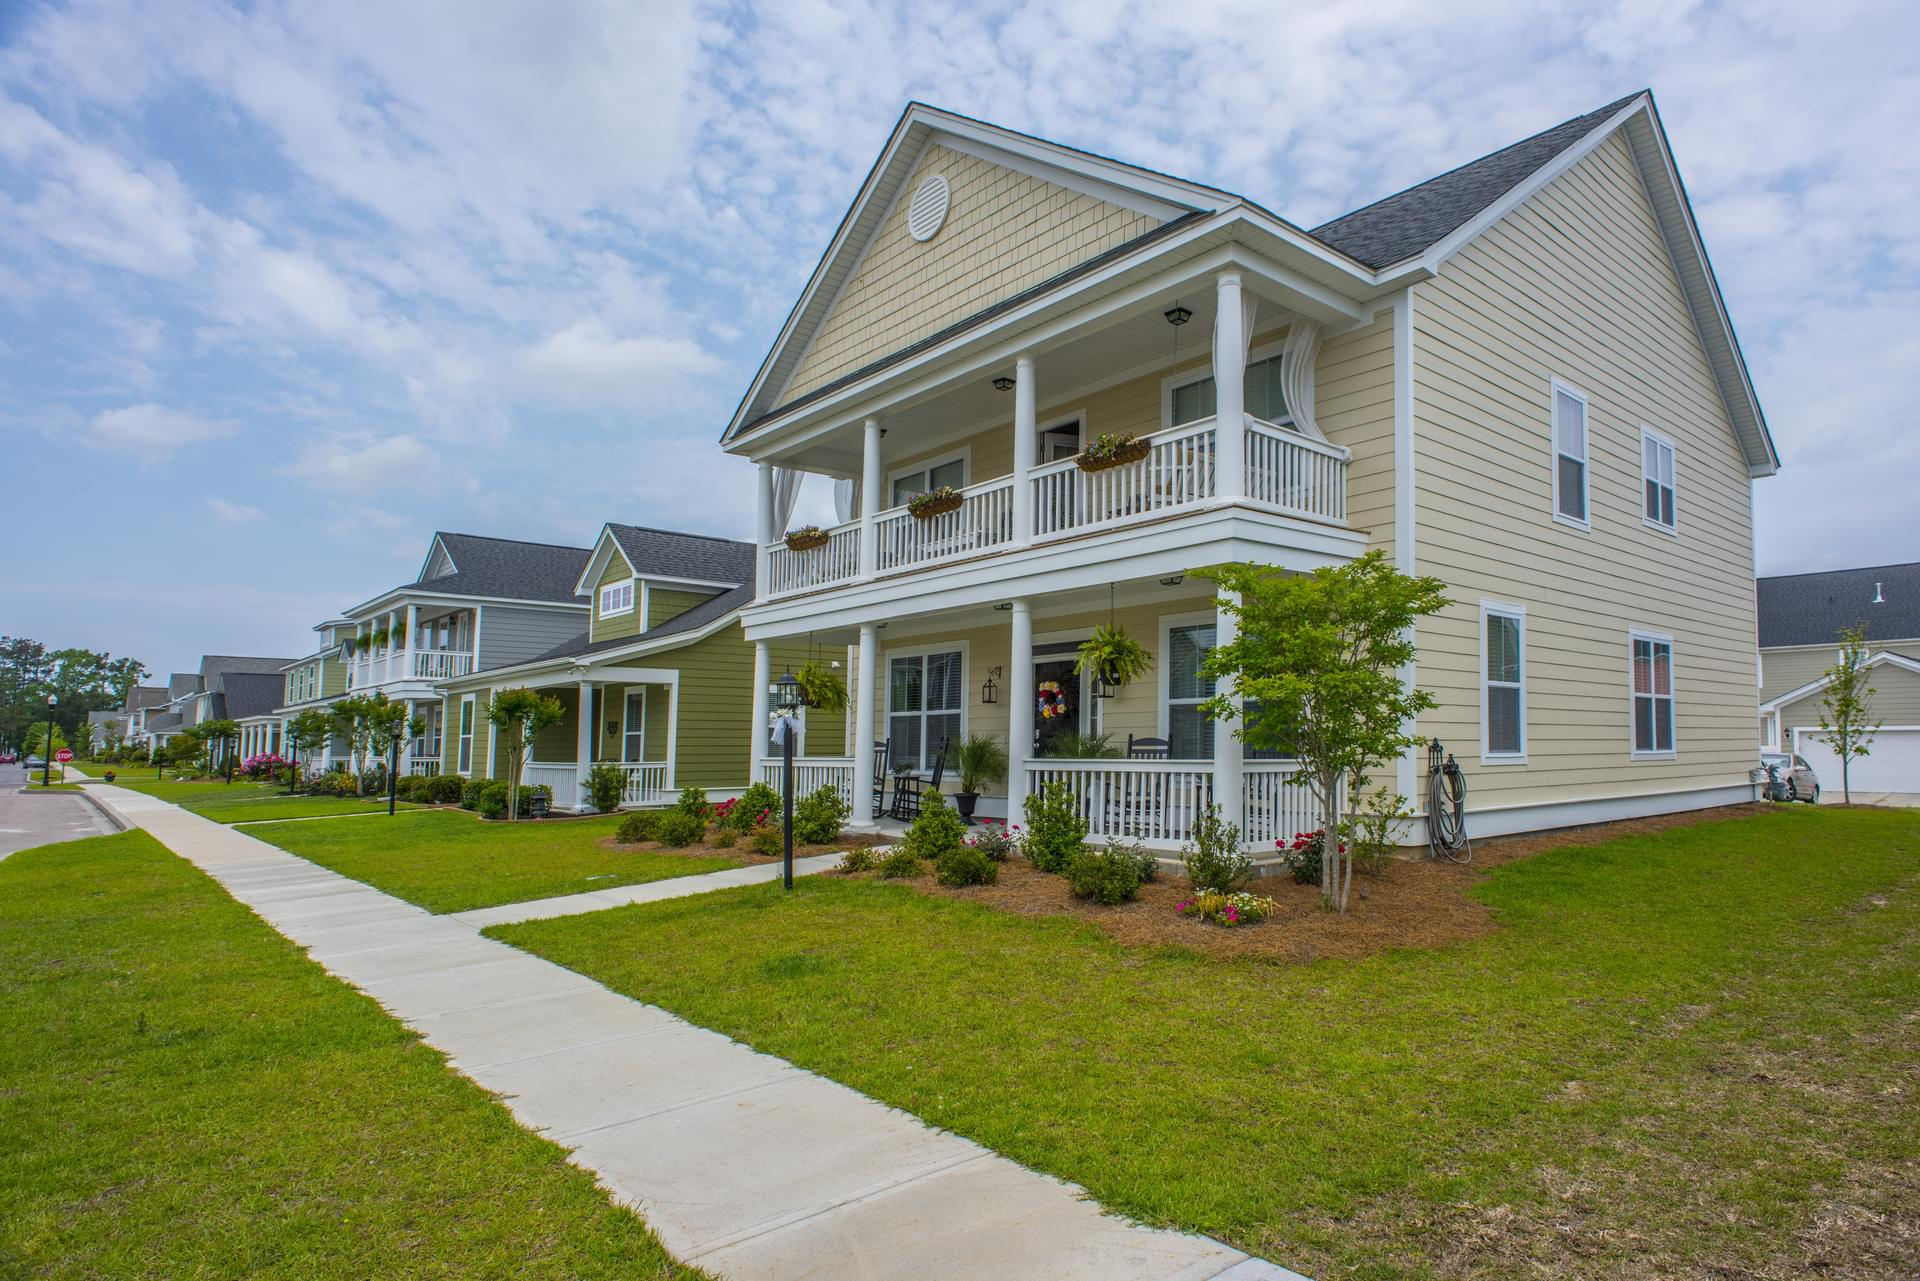 new home builders charleston sc - 28 images - new homes ...